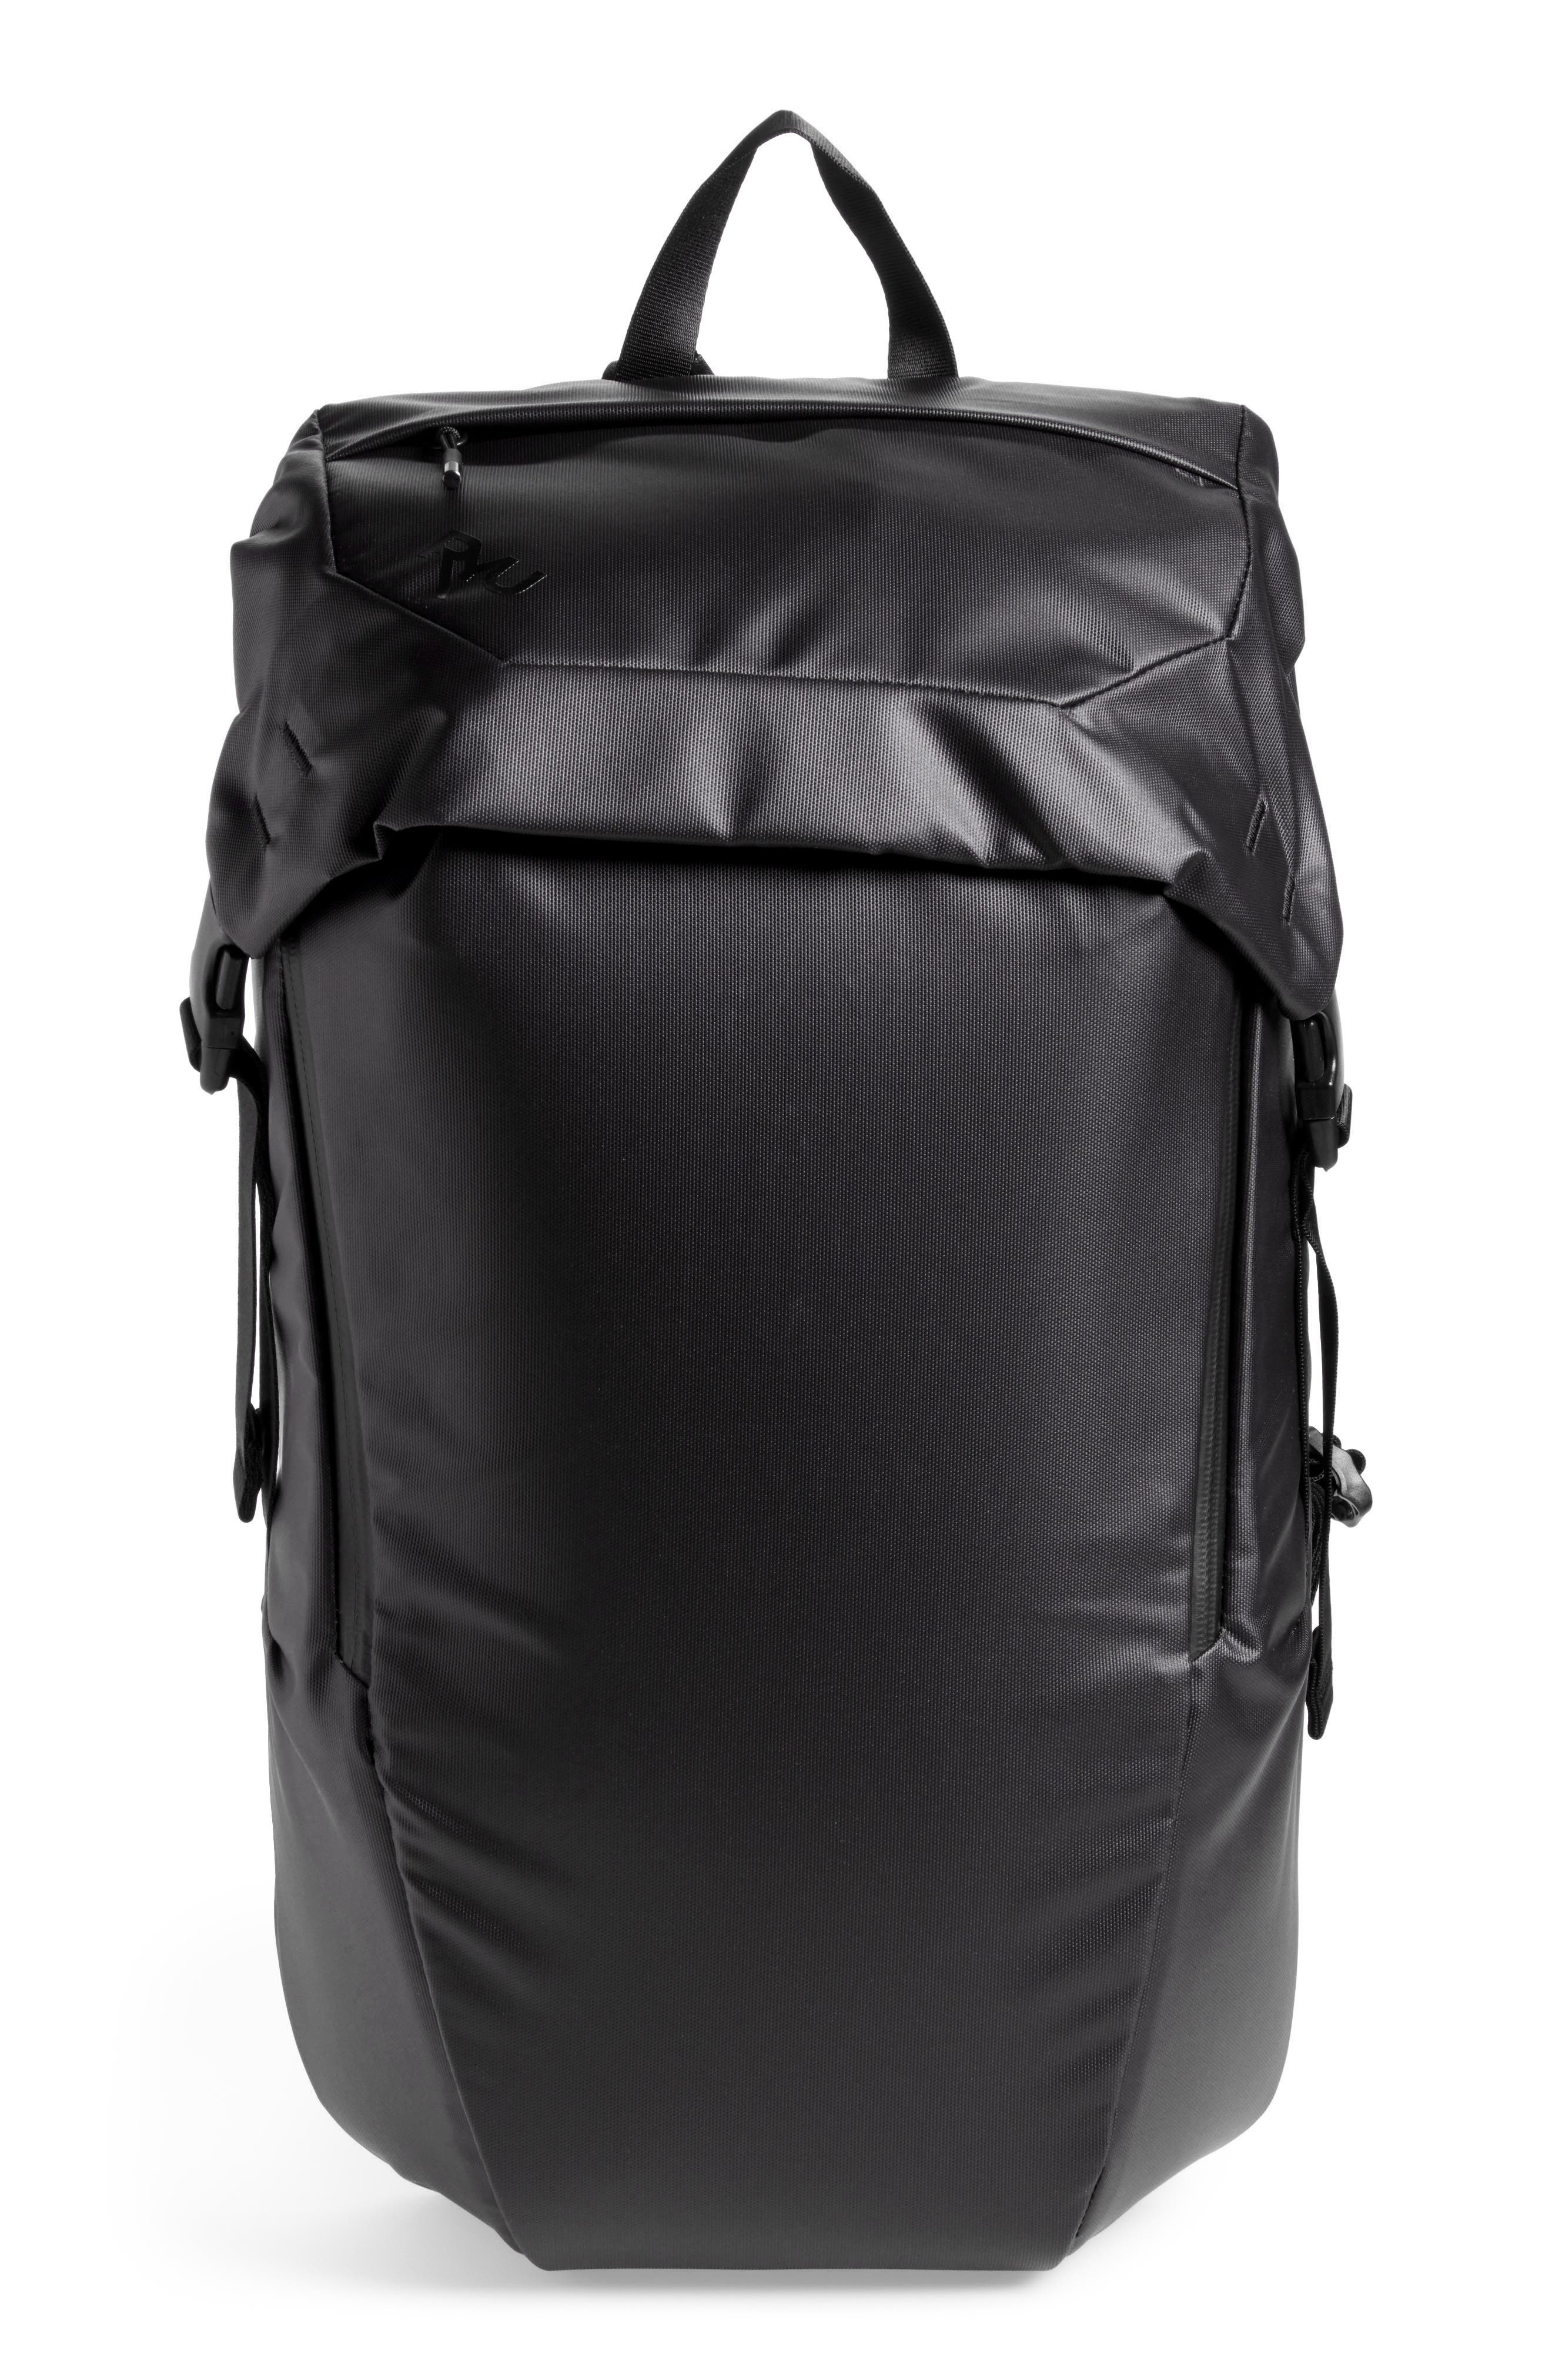 Quick Pack Backpack,                         Main,                         color, 001